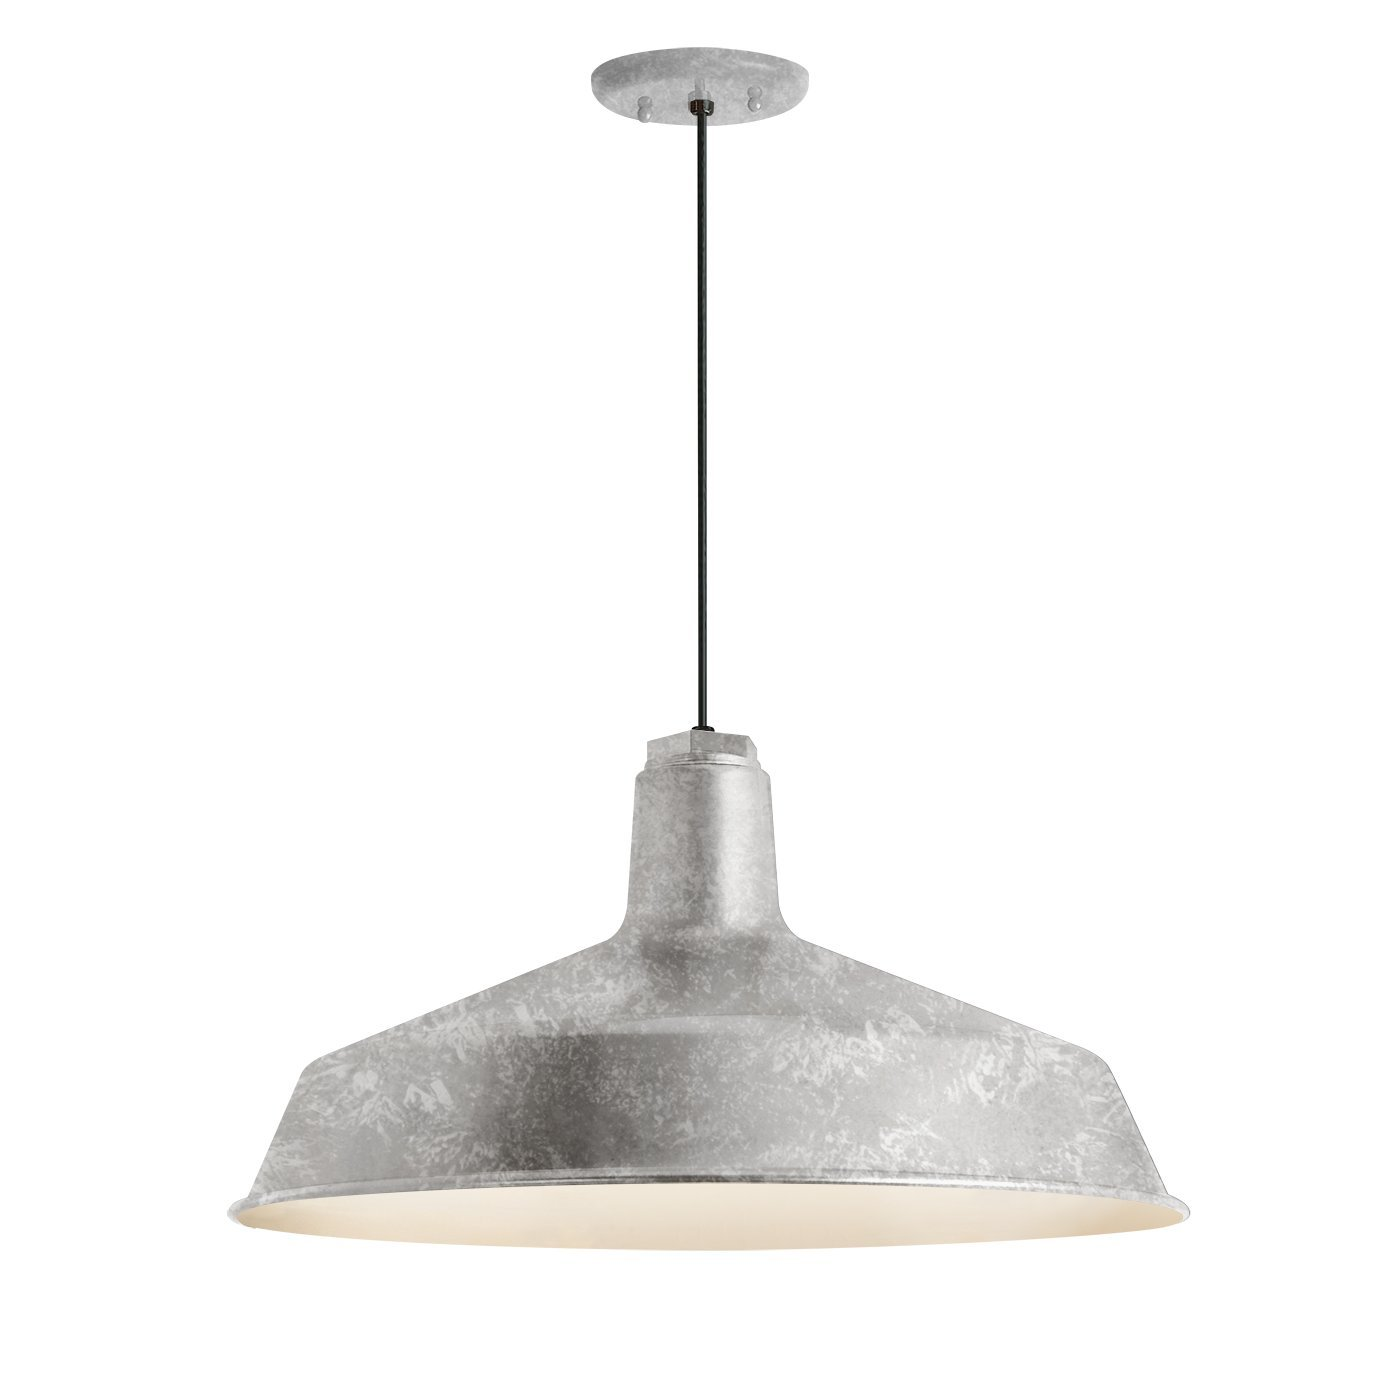 Troy RLM 5DRS16MGA-BC Standard Outdoor Pendant, Galvanized